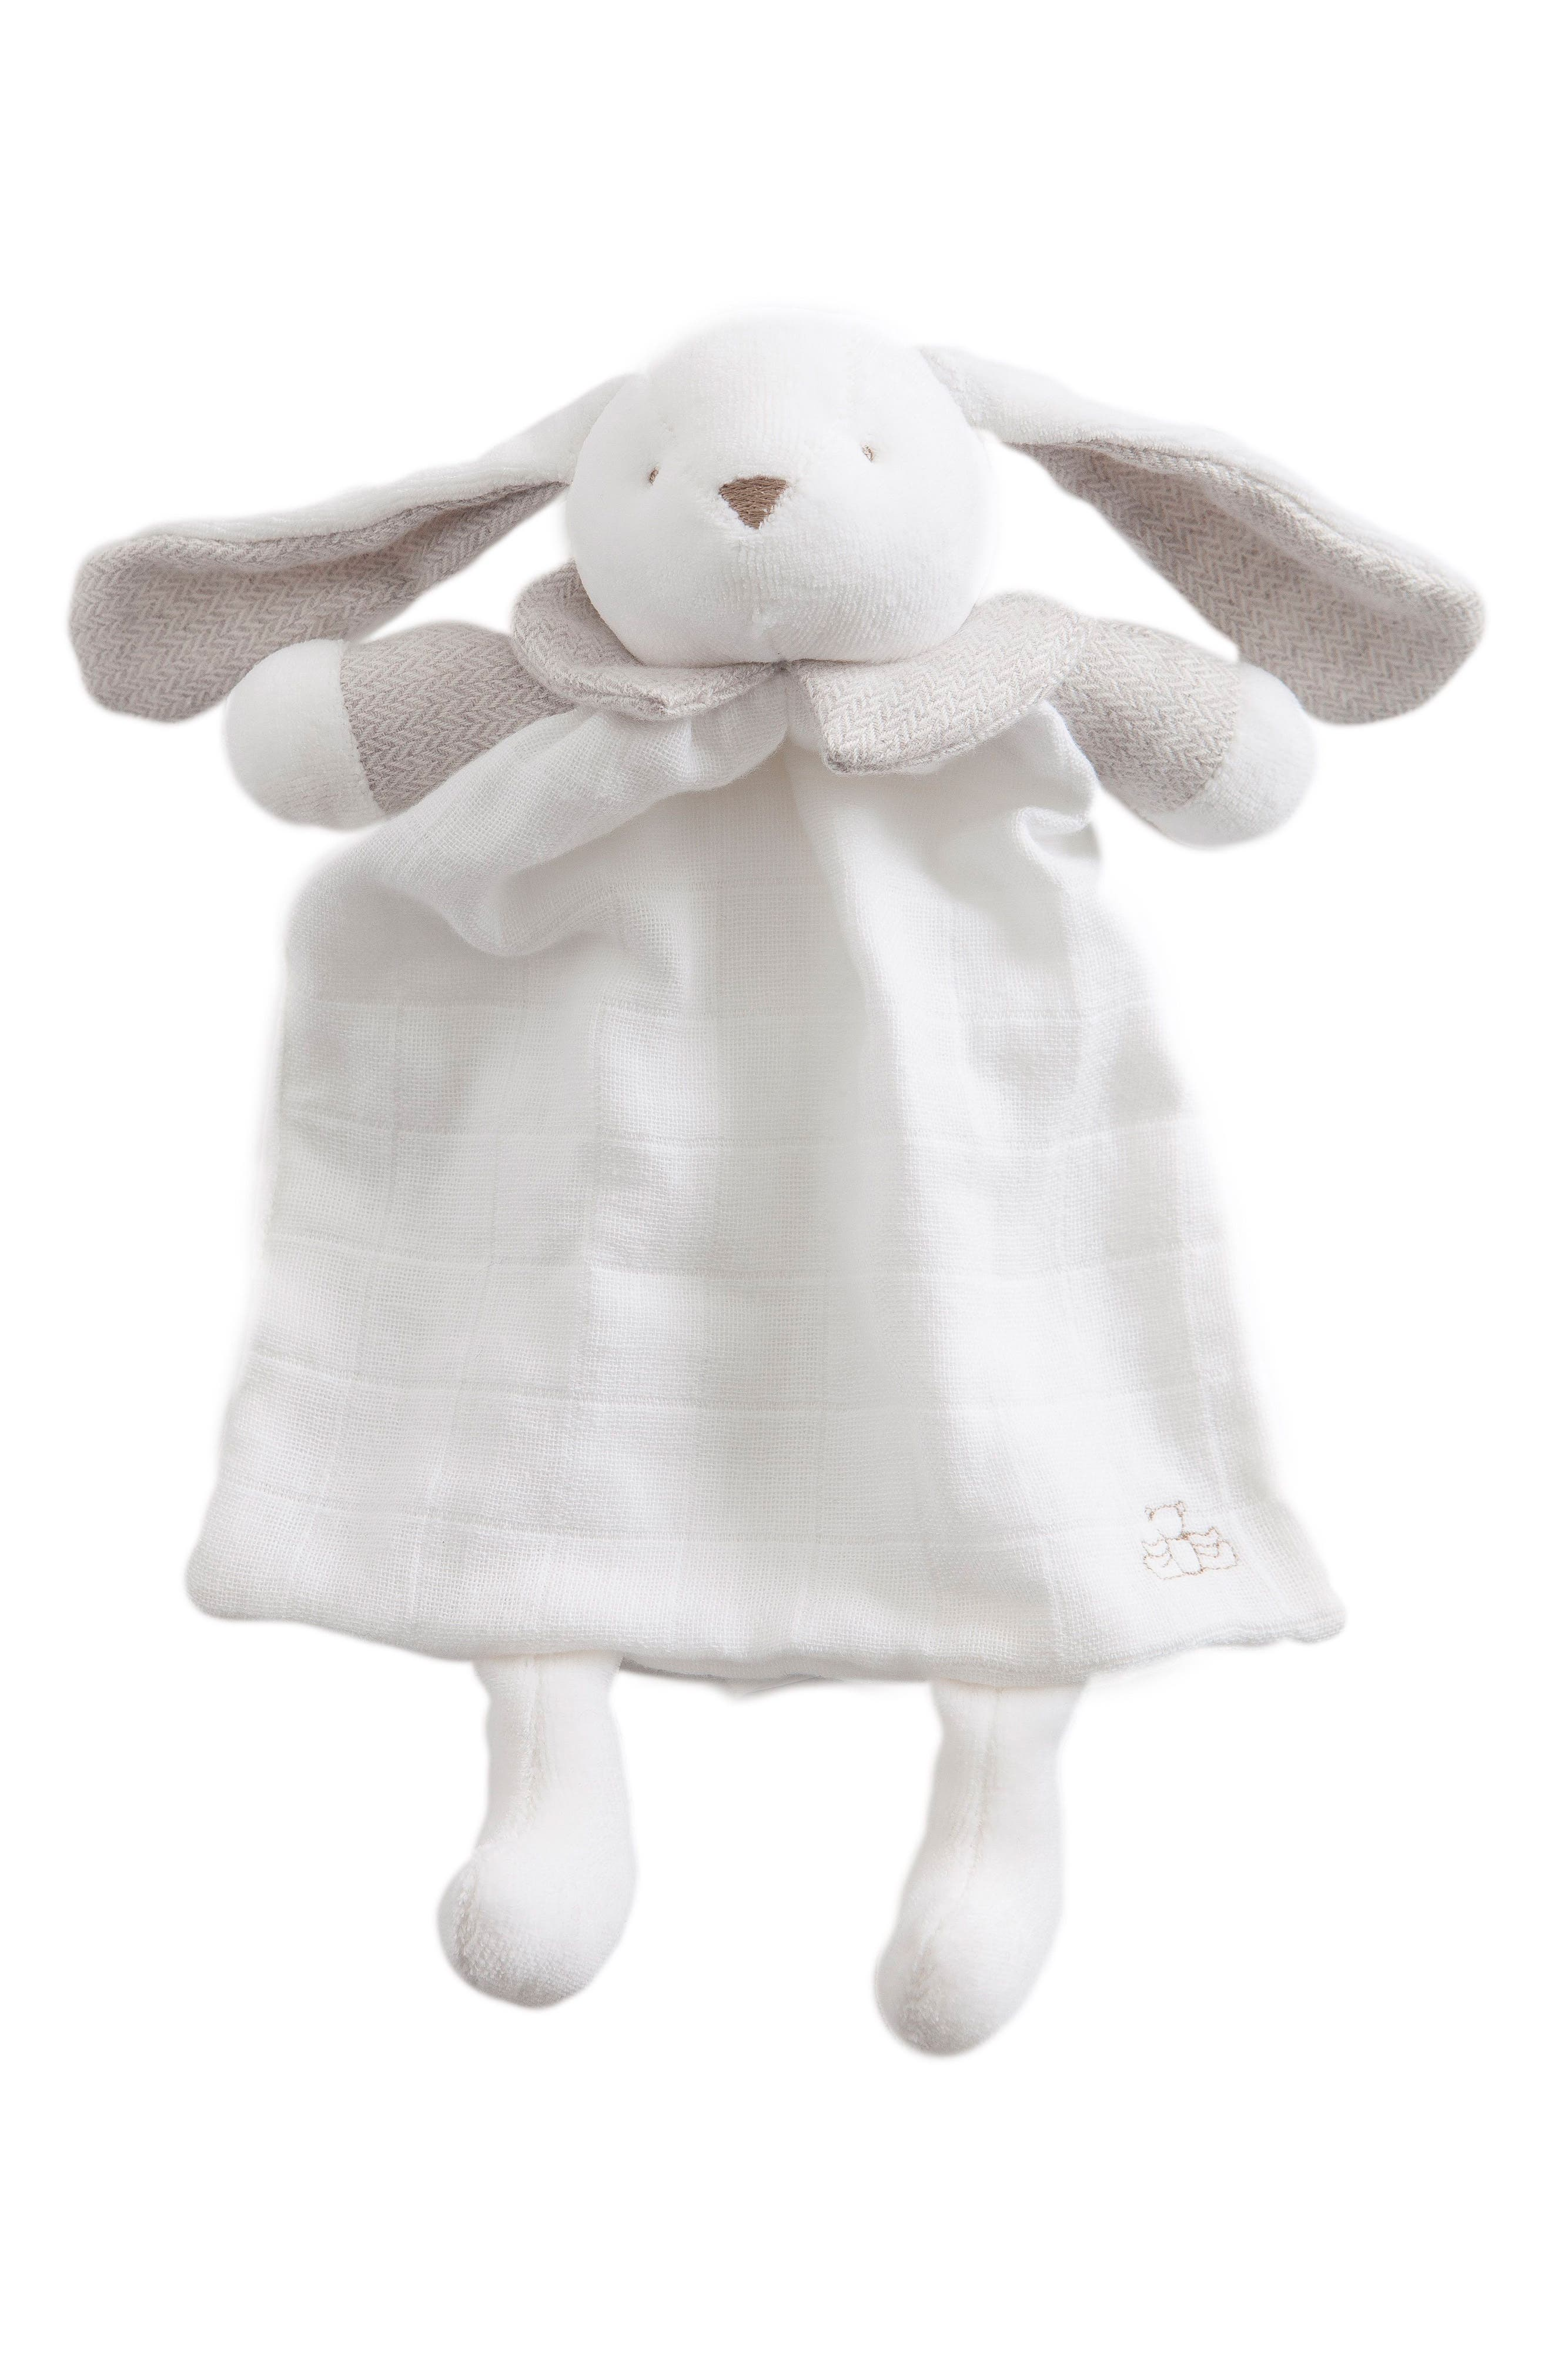 Rabbit Lovey Toy,                             Main thumbnail 1, color,                             GREY